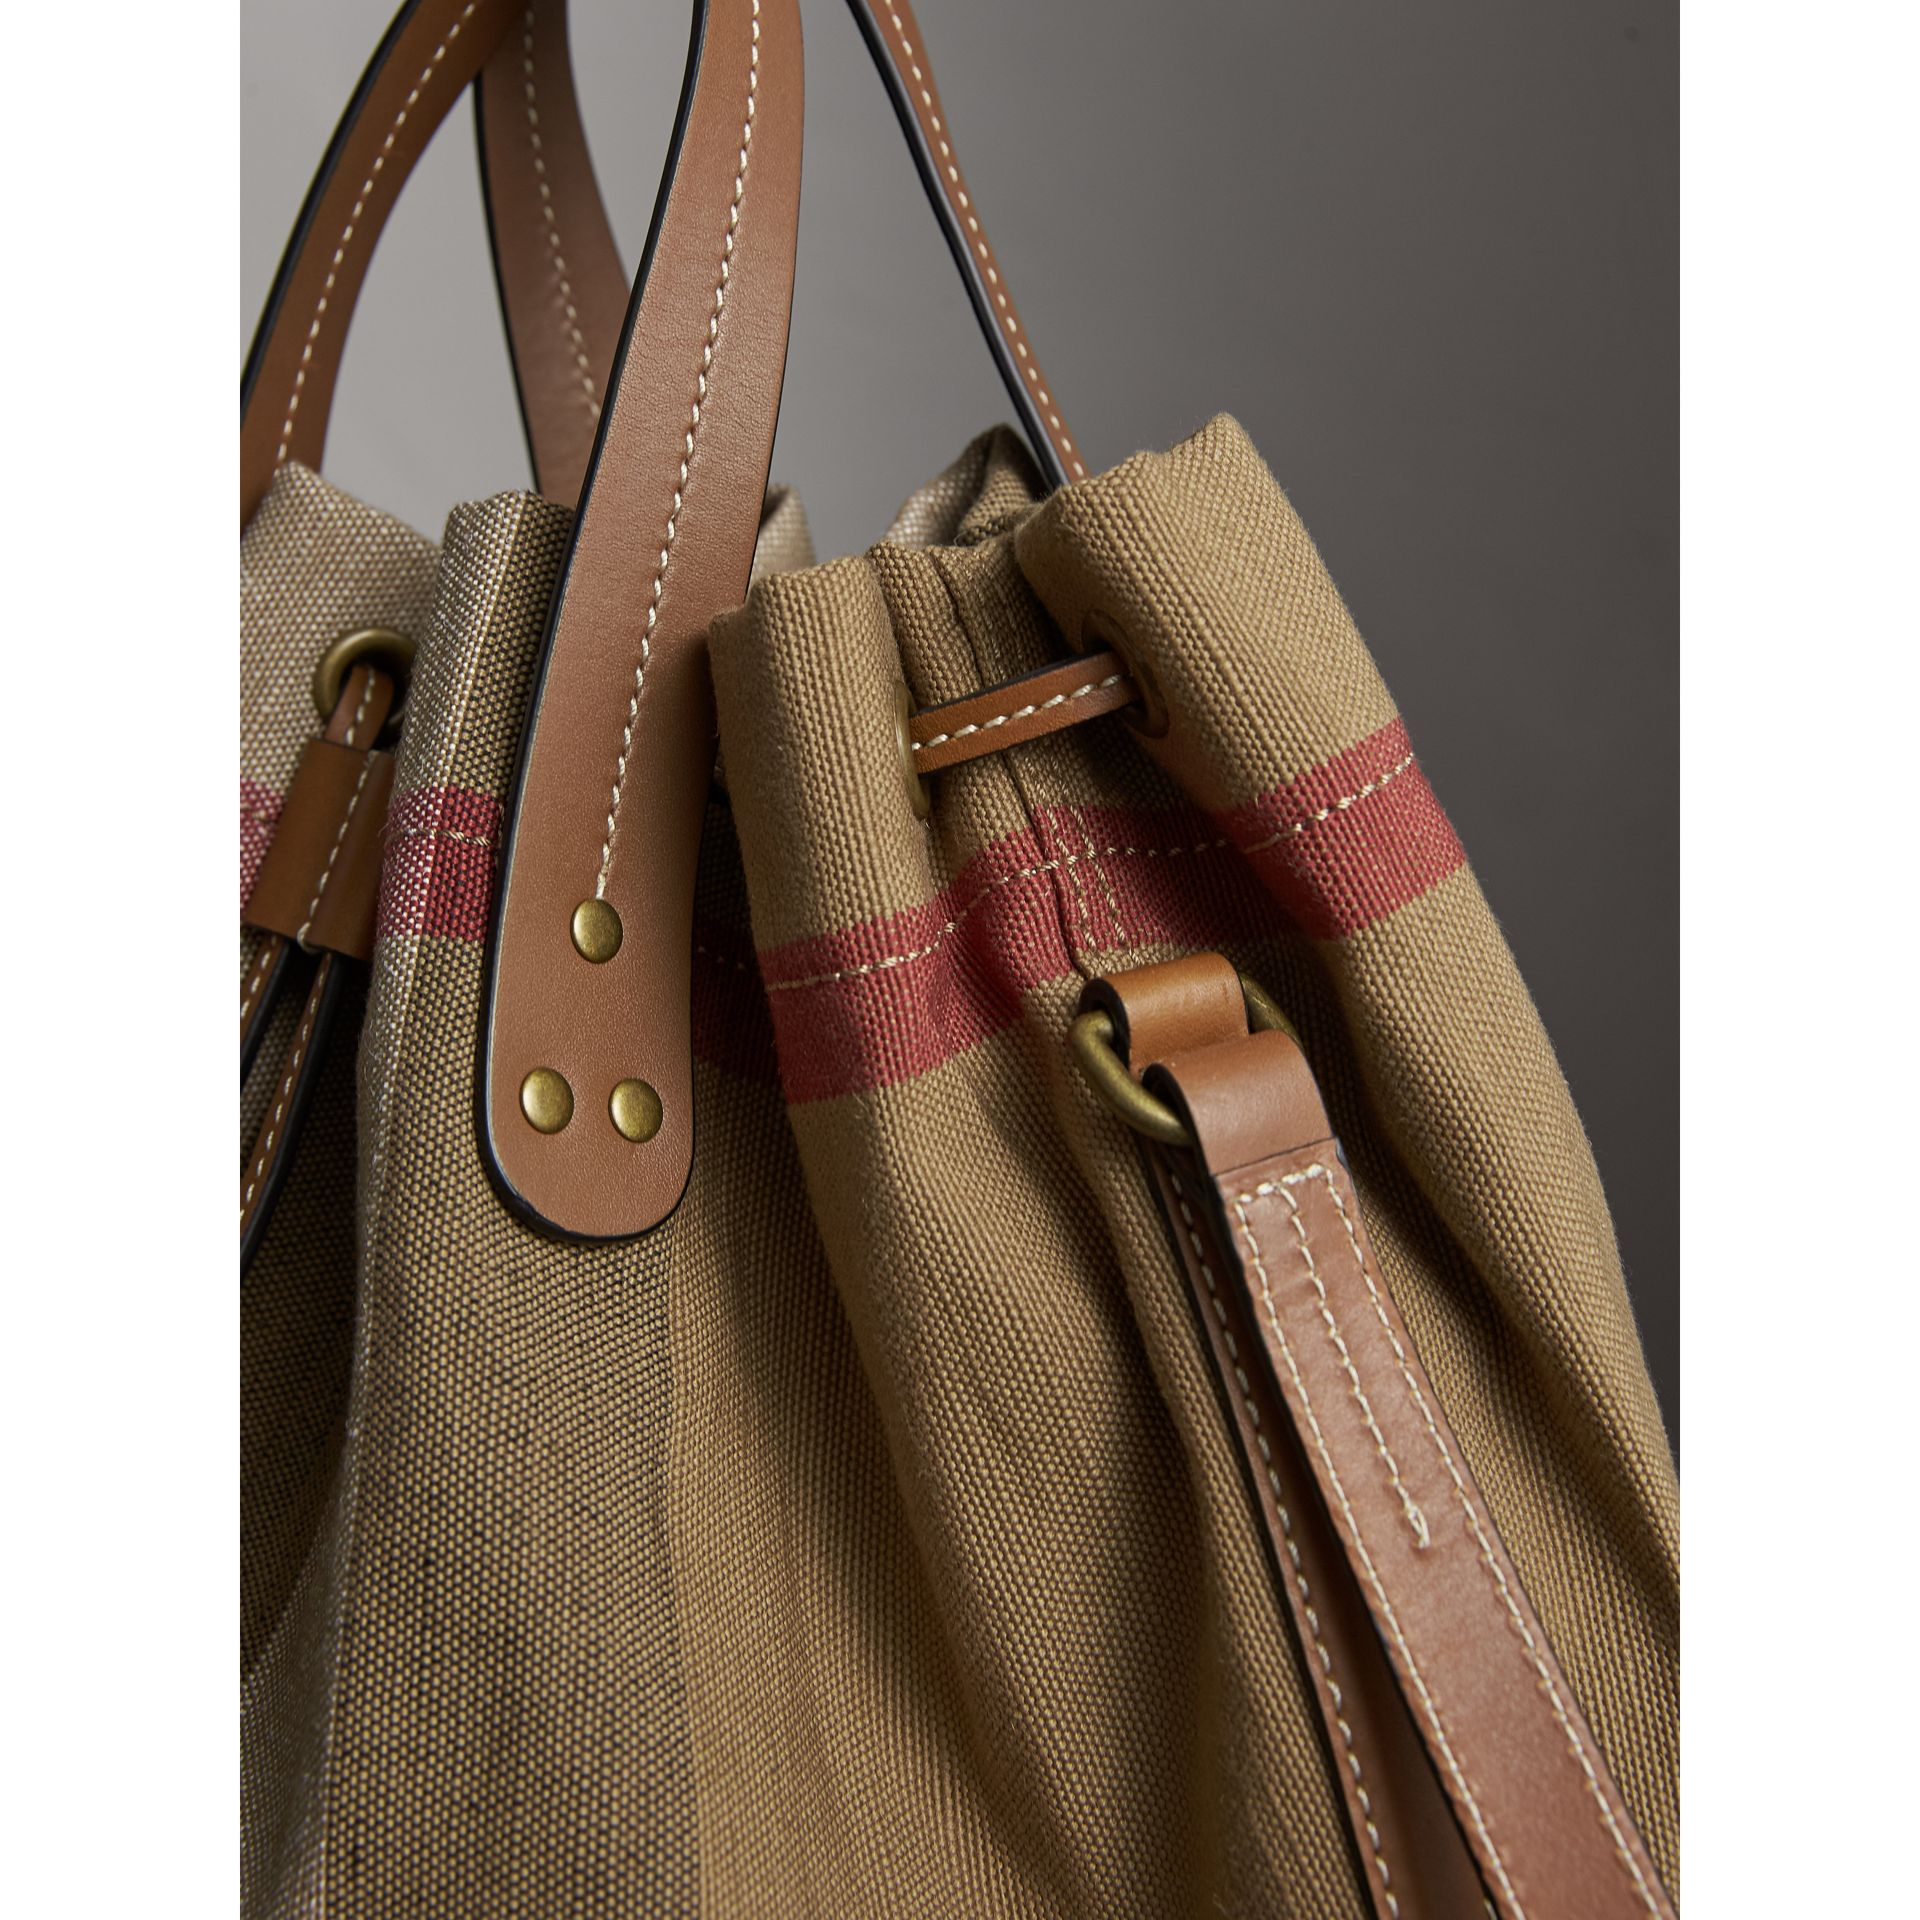 Medium Canvas Check Bucket Bag in Tan - Women | Burberry - gallery image 6